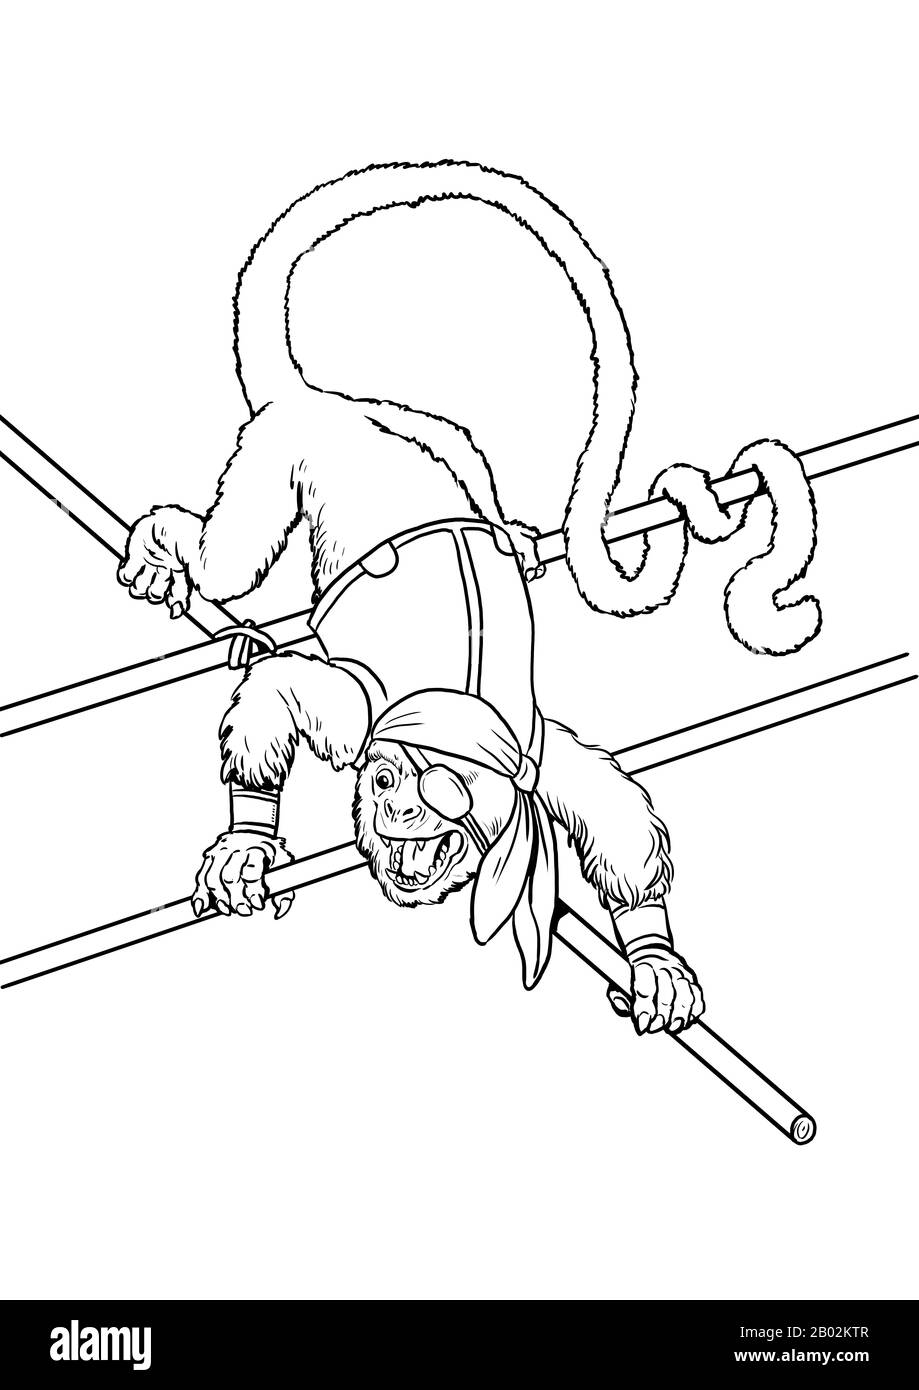 Fishing Rod Coloring Page , Transparent Cartoon, Free Cliparts &  Silhouettes - NetClipart   1390x919